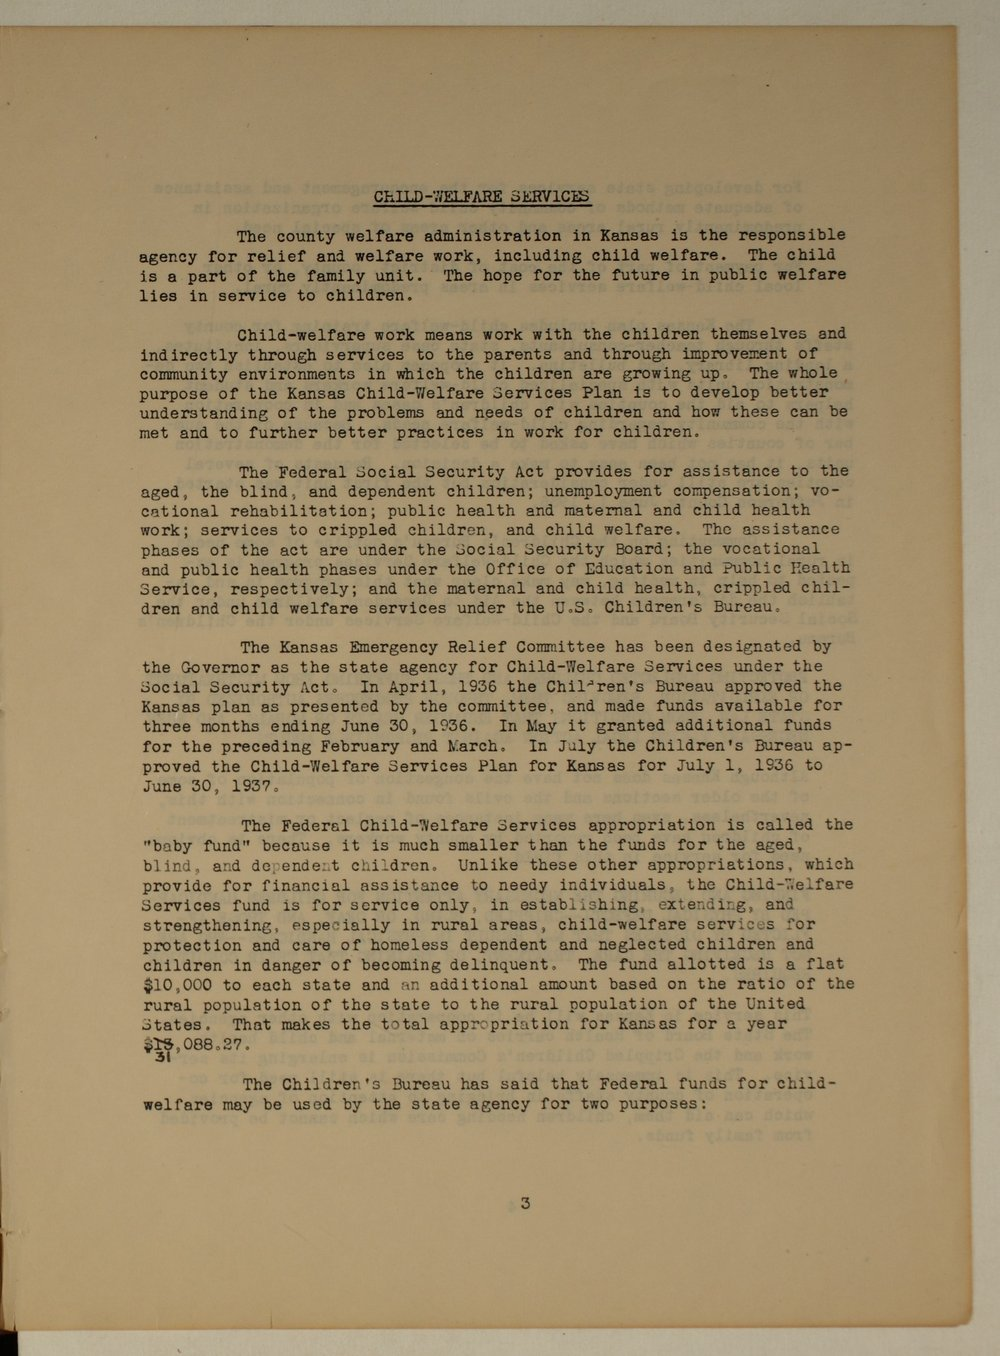 Kansas Emergency Relief Committee, bulletin 366 - 4